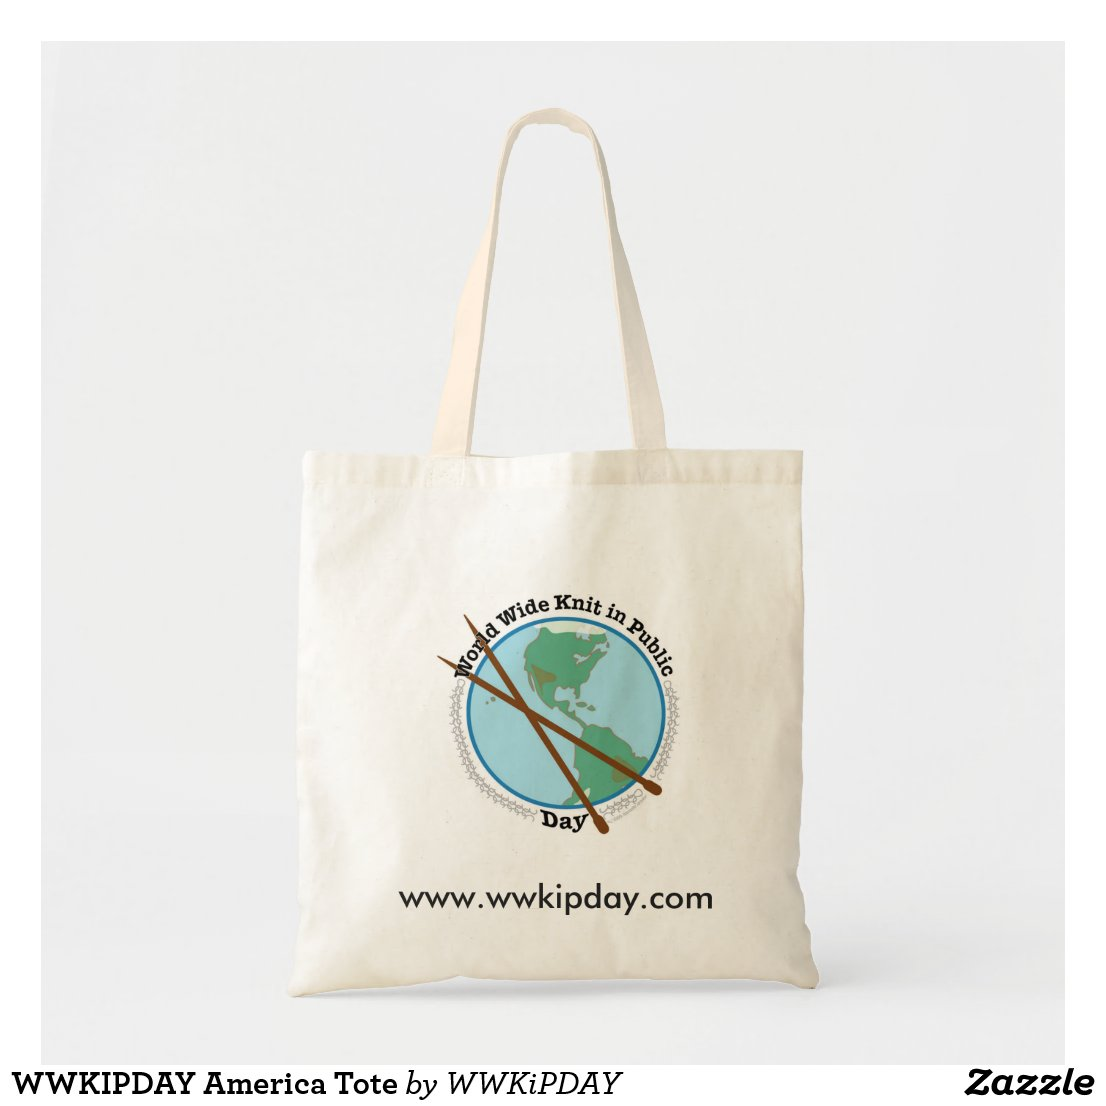 WWKIPDAY America Tote